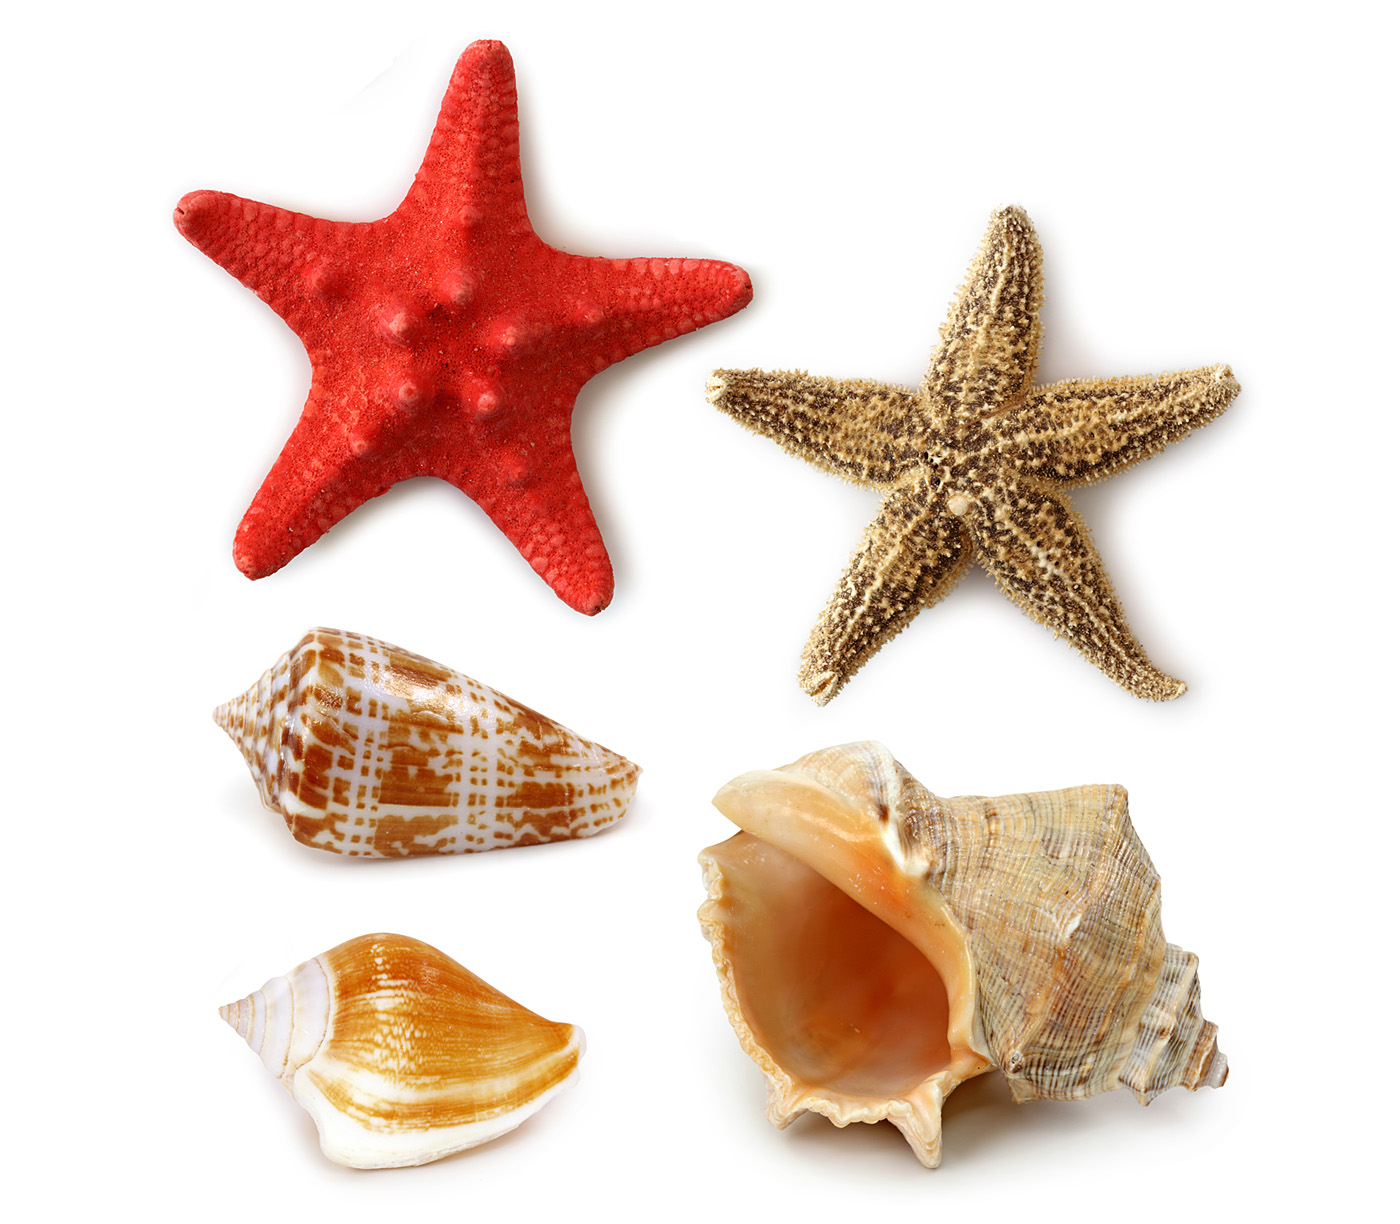 Shells and starfish 31578